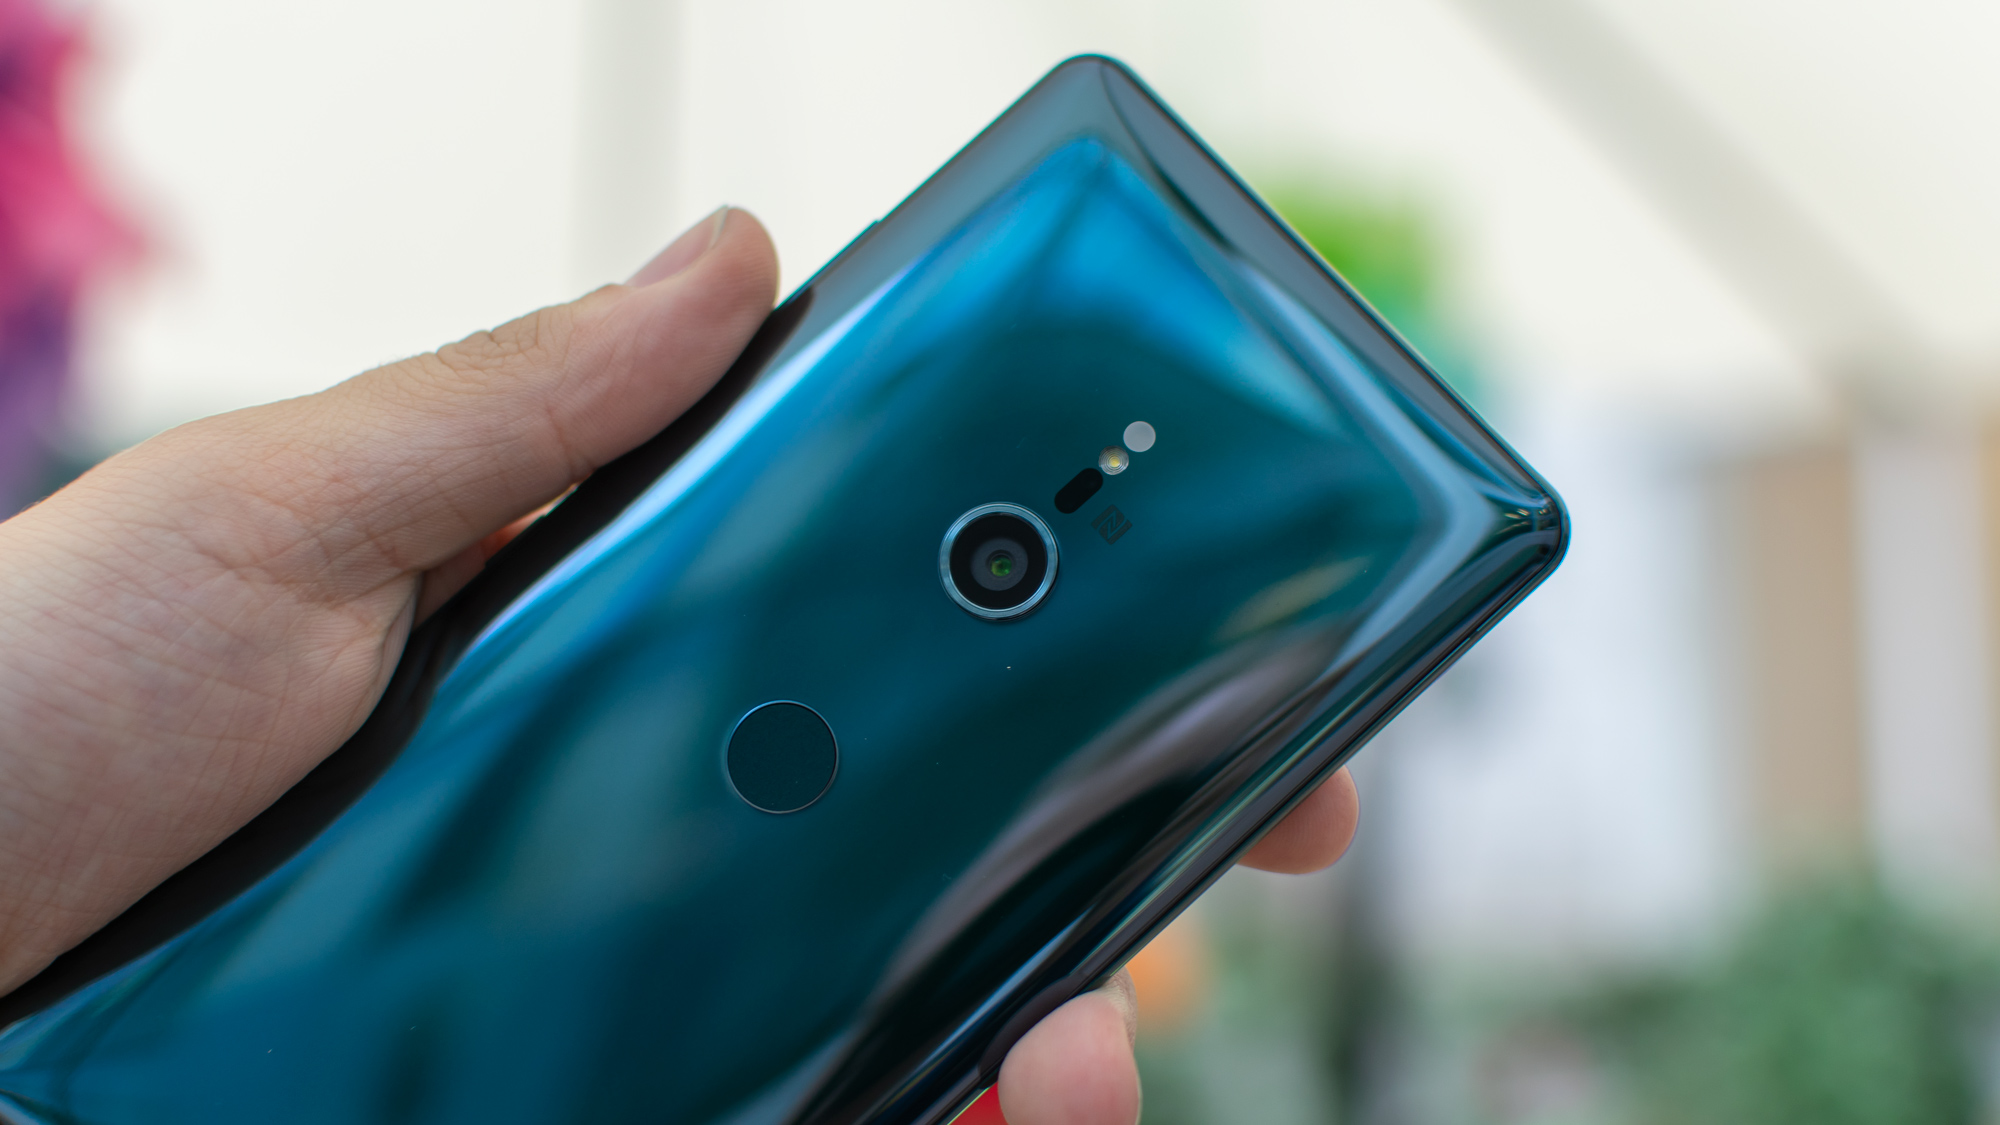 Sony launches flagship smartphone Xperia XZ3 with OLED display